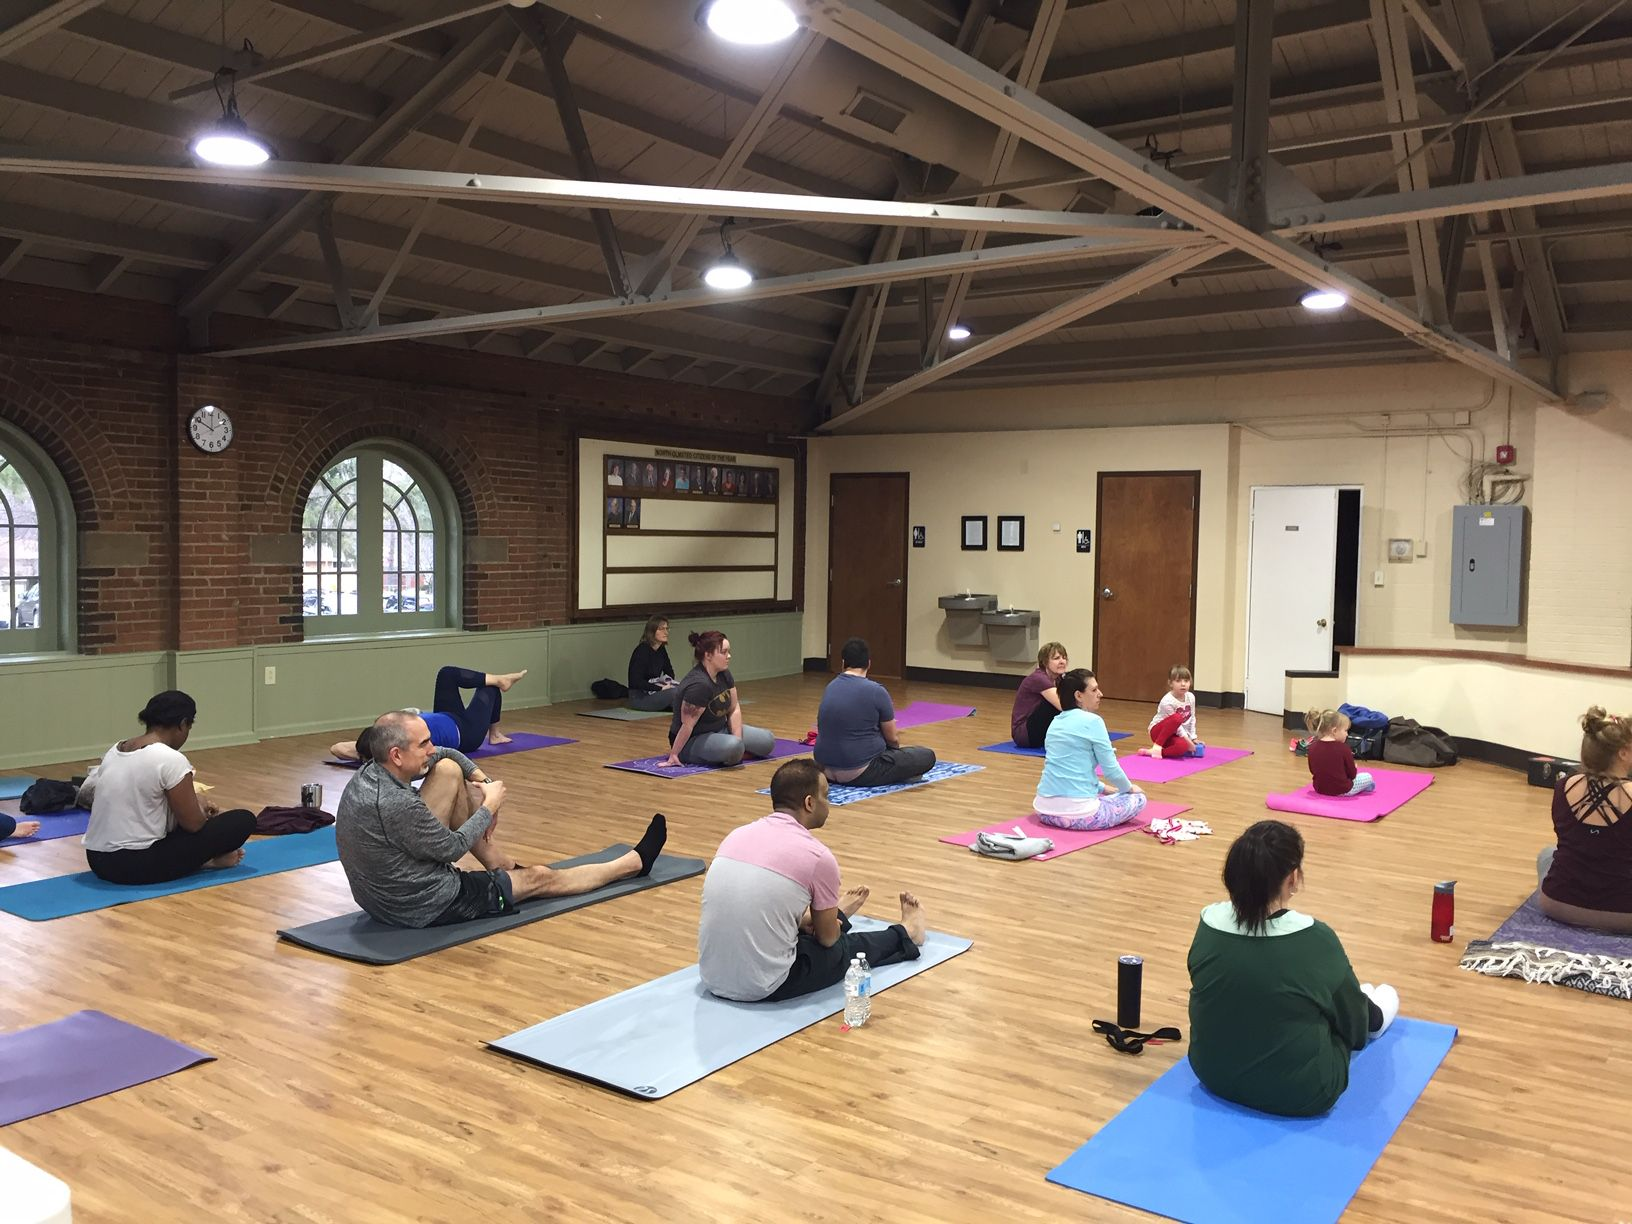 North Olmsted Schedules Free Monthly Yoga Events At The Community Cabin Cleveland Com